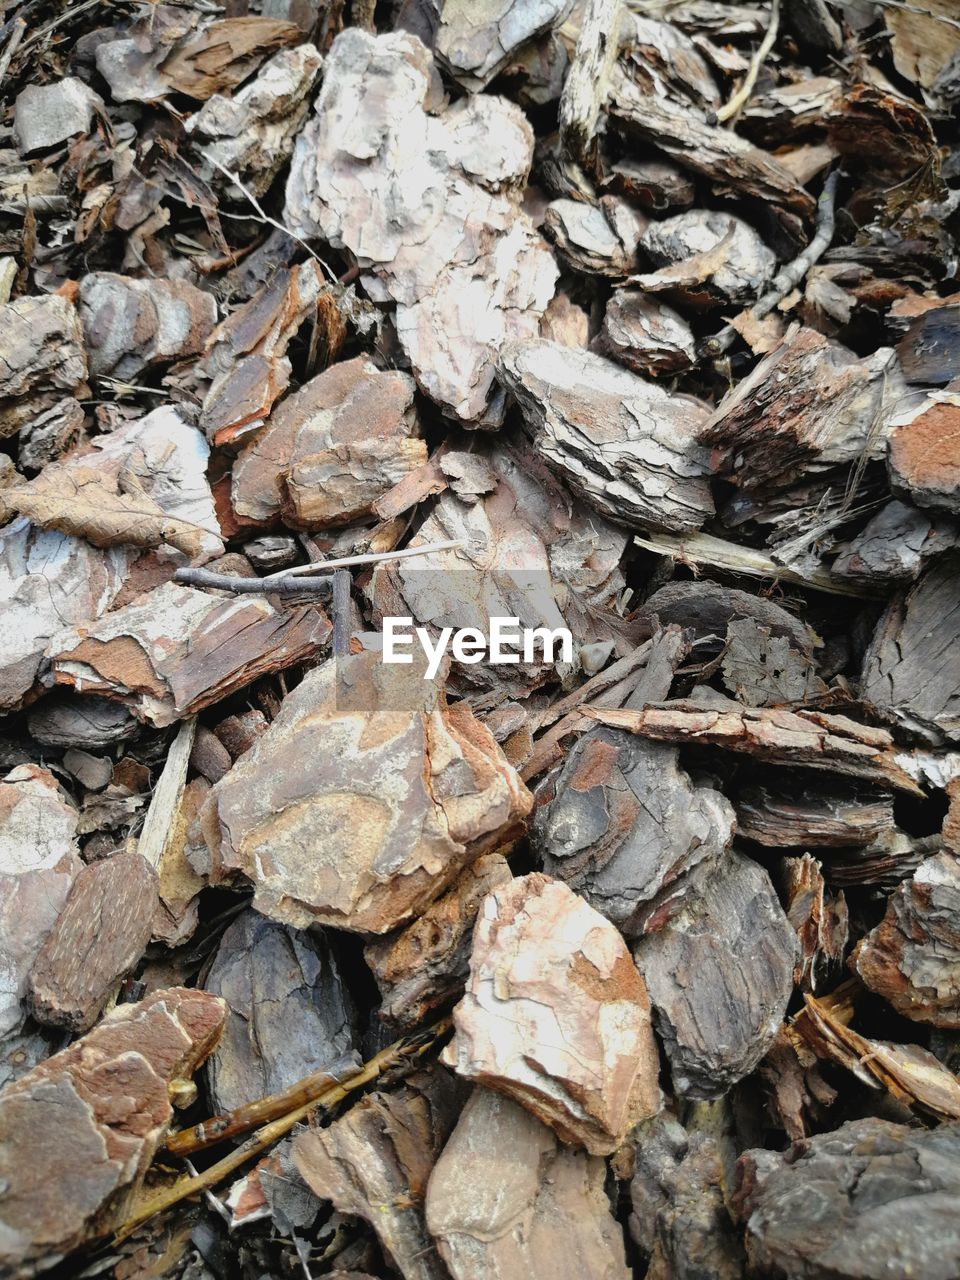 full frame, backgrounds, no people, day, nature, abundance, large group of objects, plant part, leaf, dry, textured, high angle view, outdoors, leaves, close-up, rock, field, solid, land, heap, dried